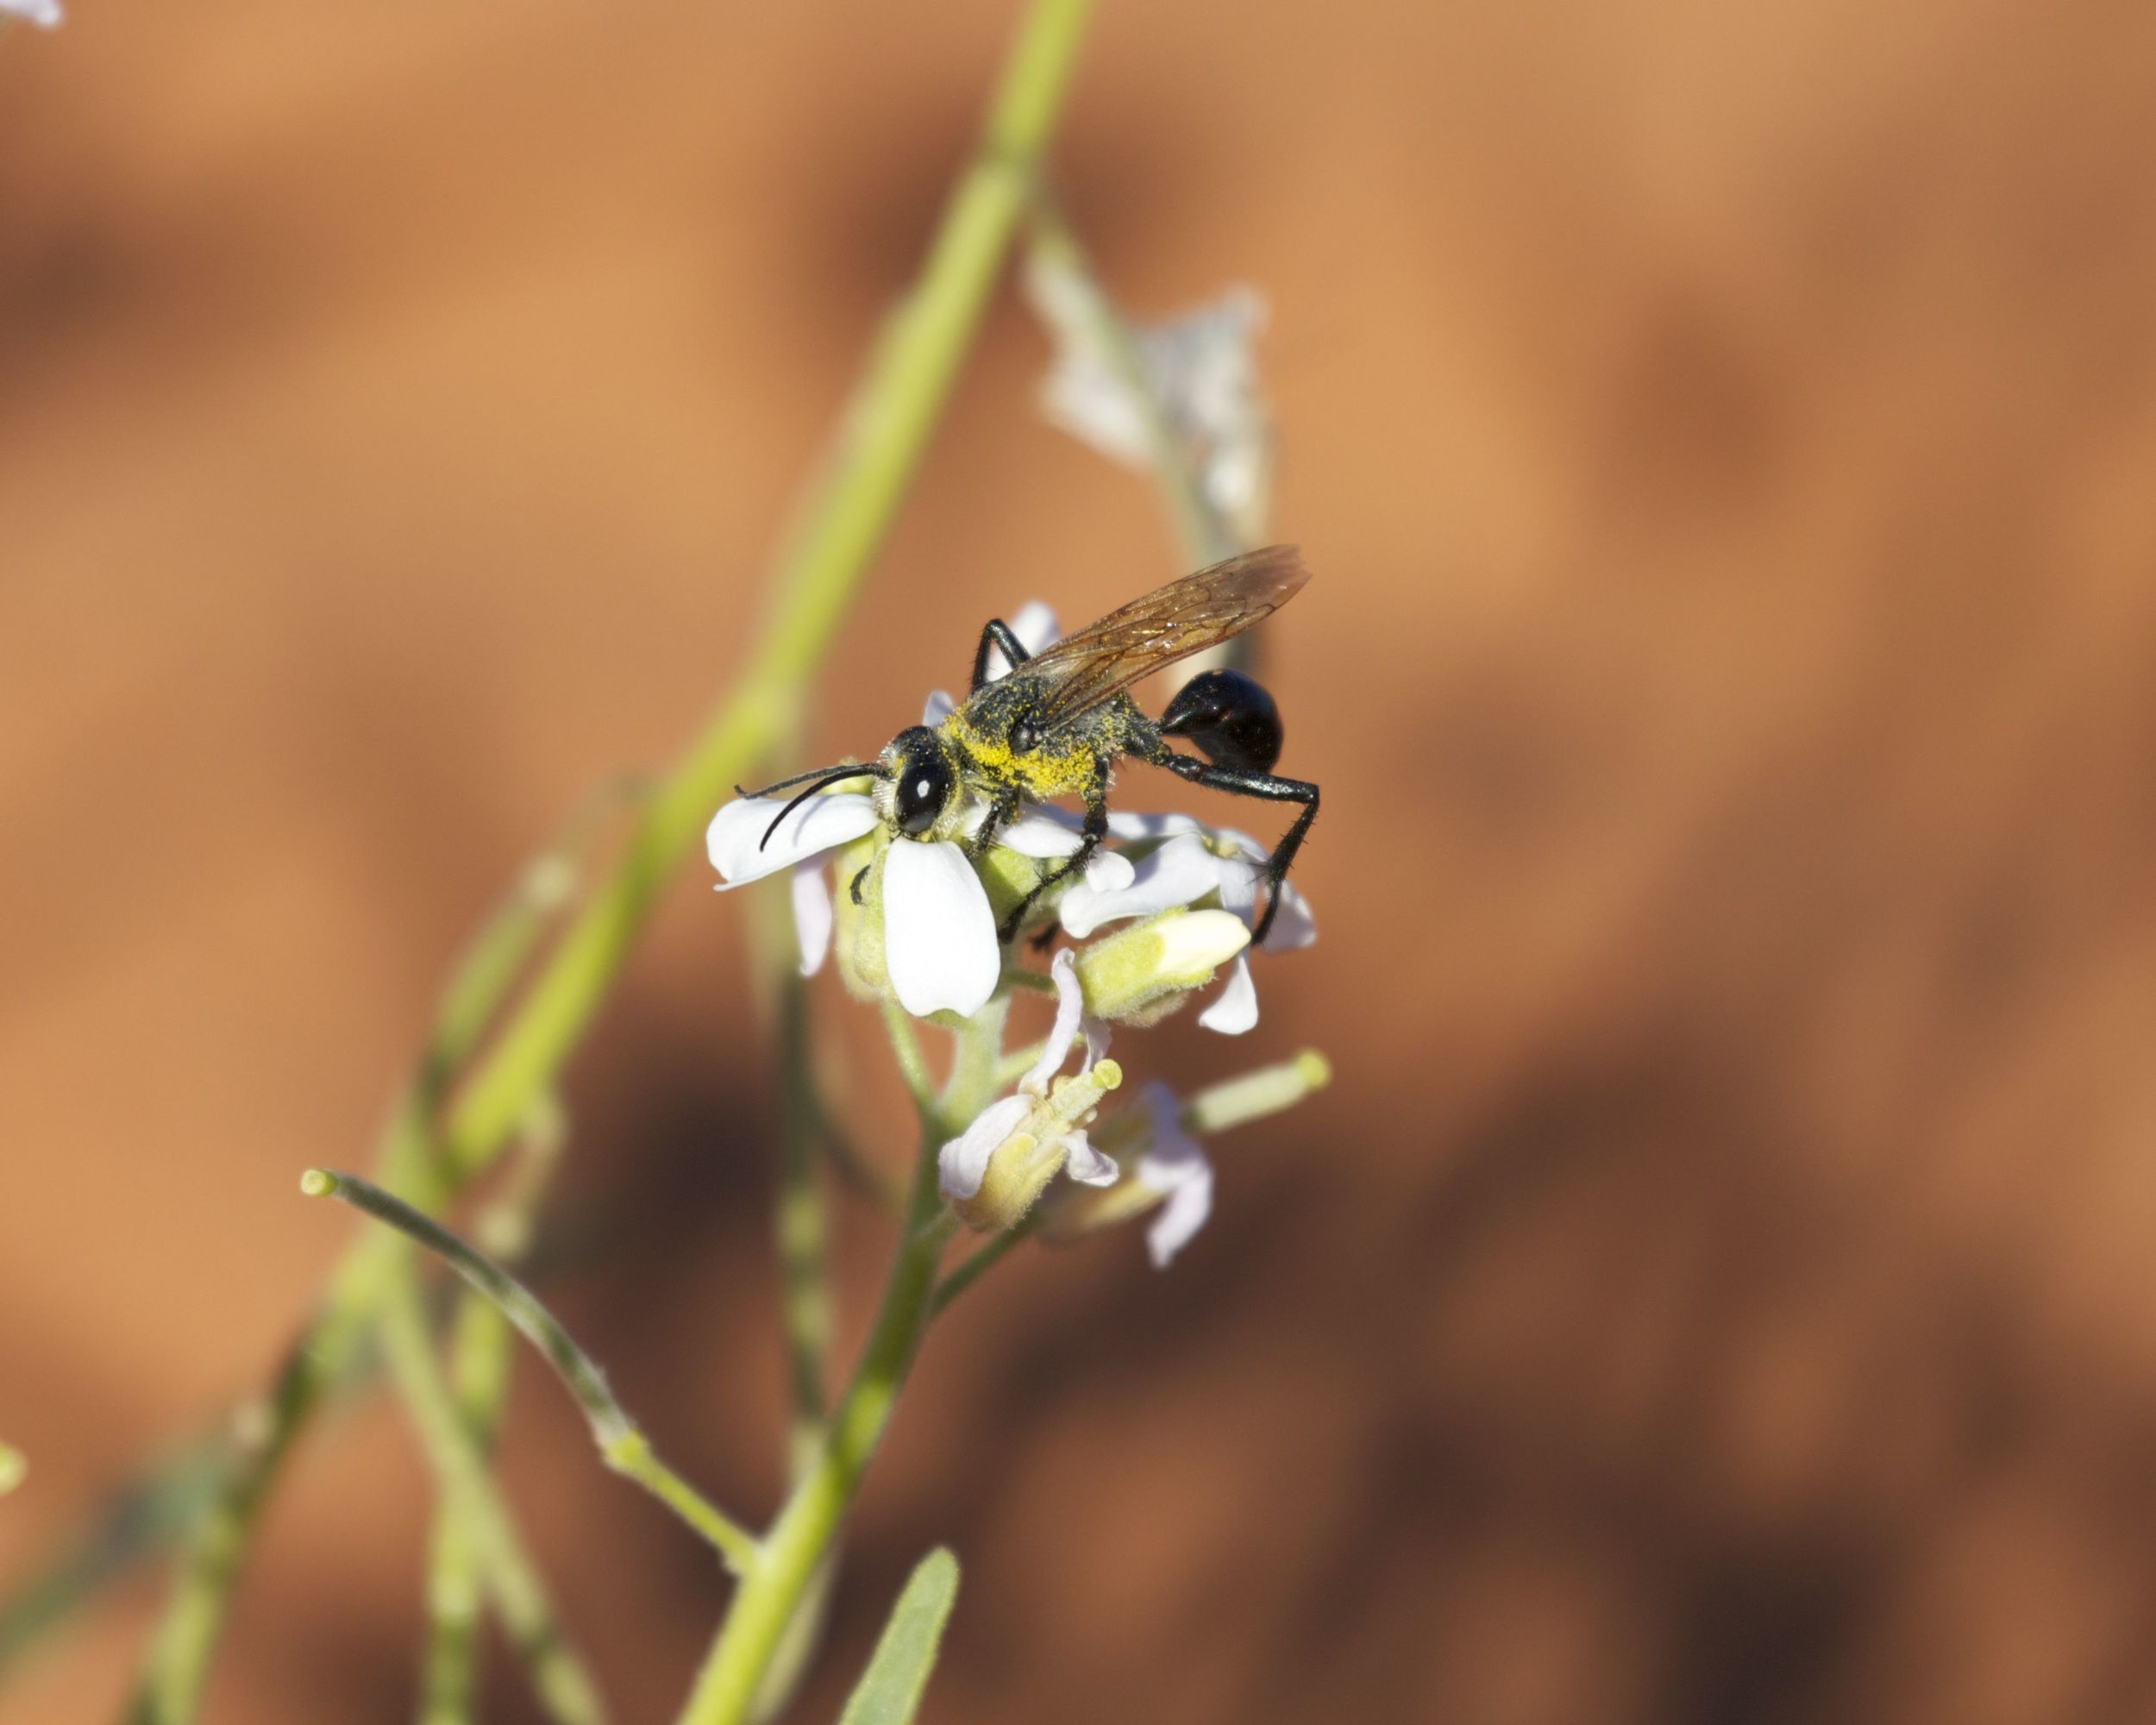 Wasp pollinating flowers, Simpson Desert, NT